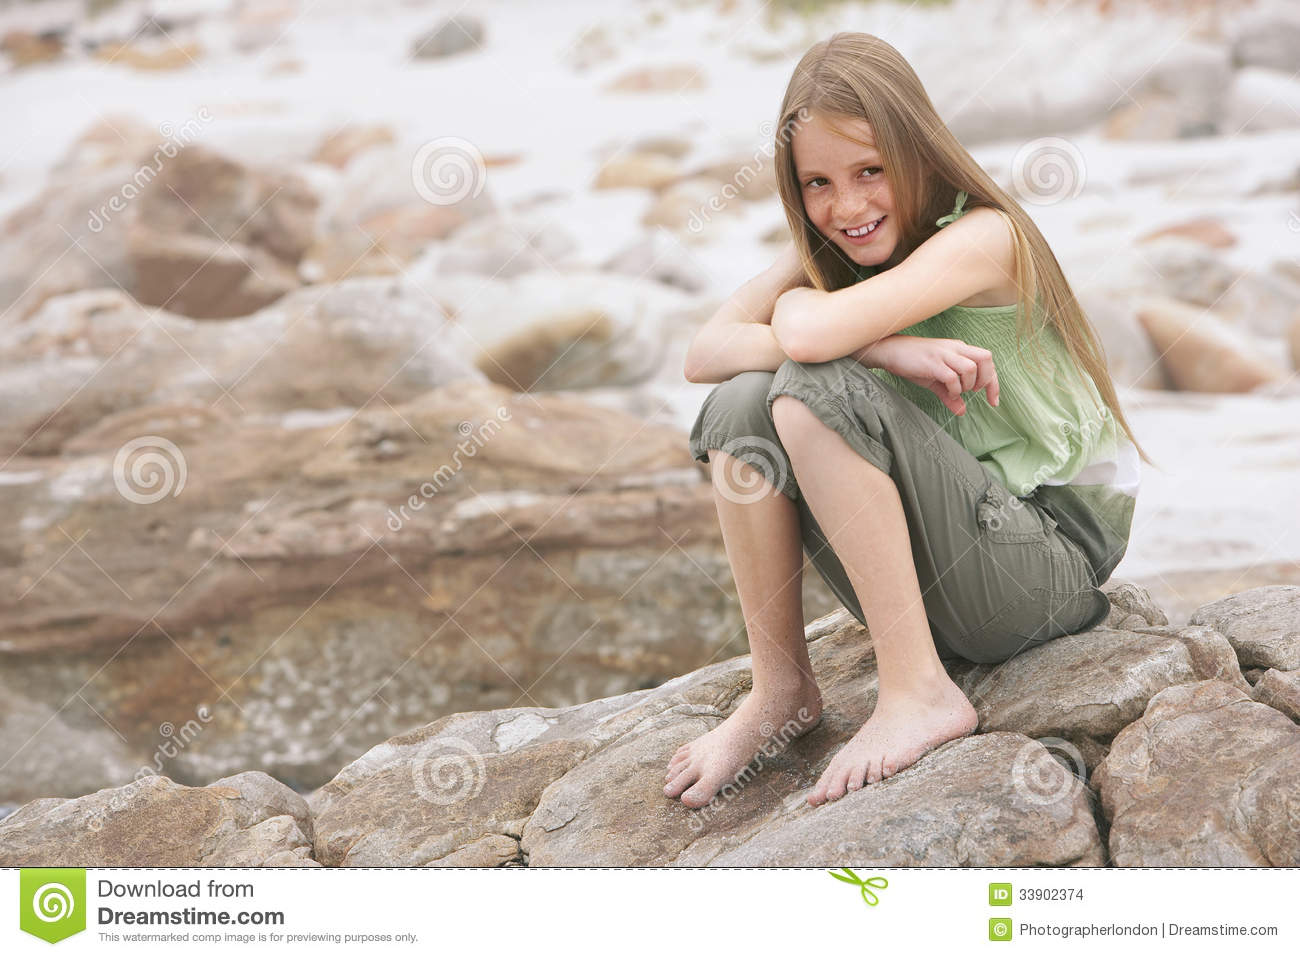 Doesn't like girl sitting on rock hot